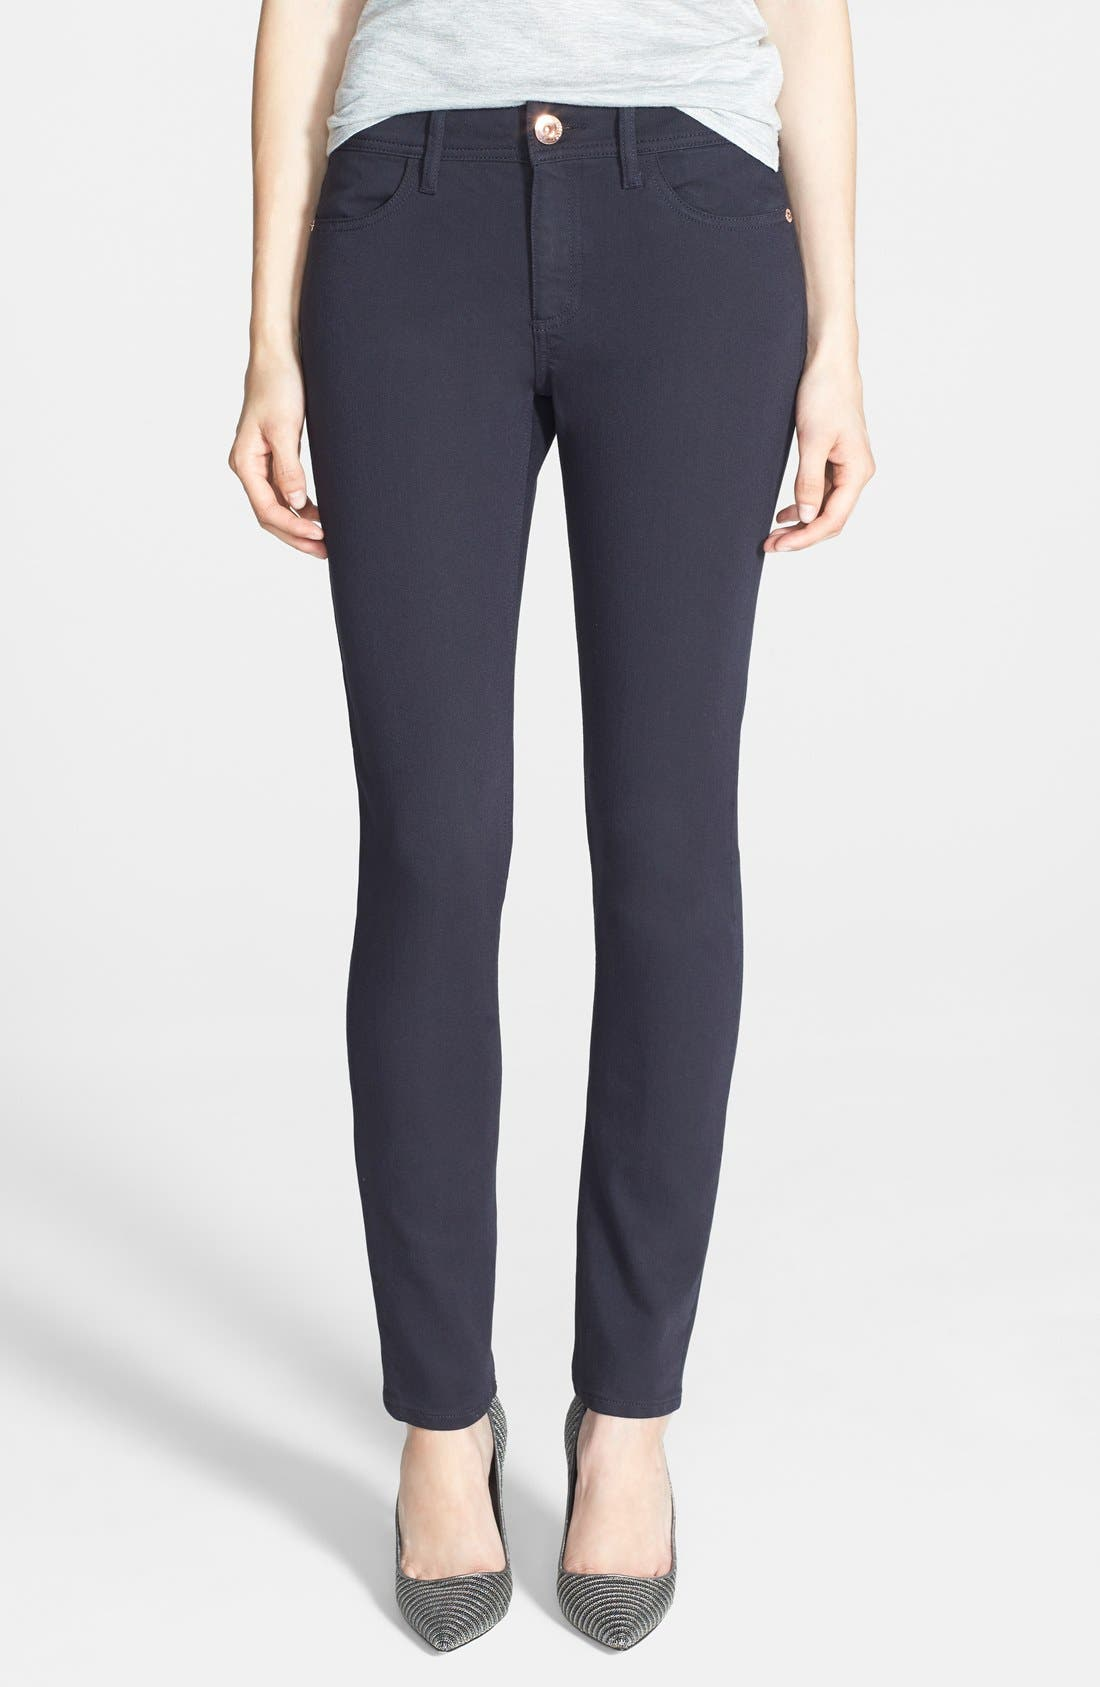 Main Image - DL1961 'Florence' Instasculpt Skinny Jeans (Fairview)